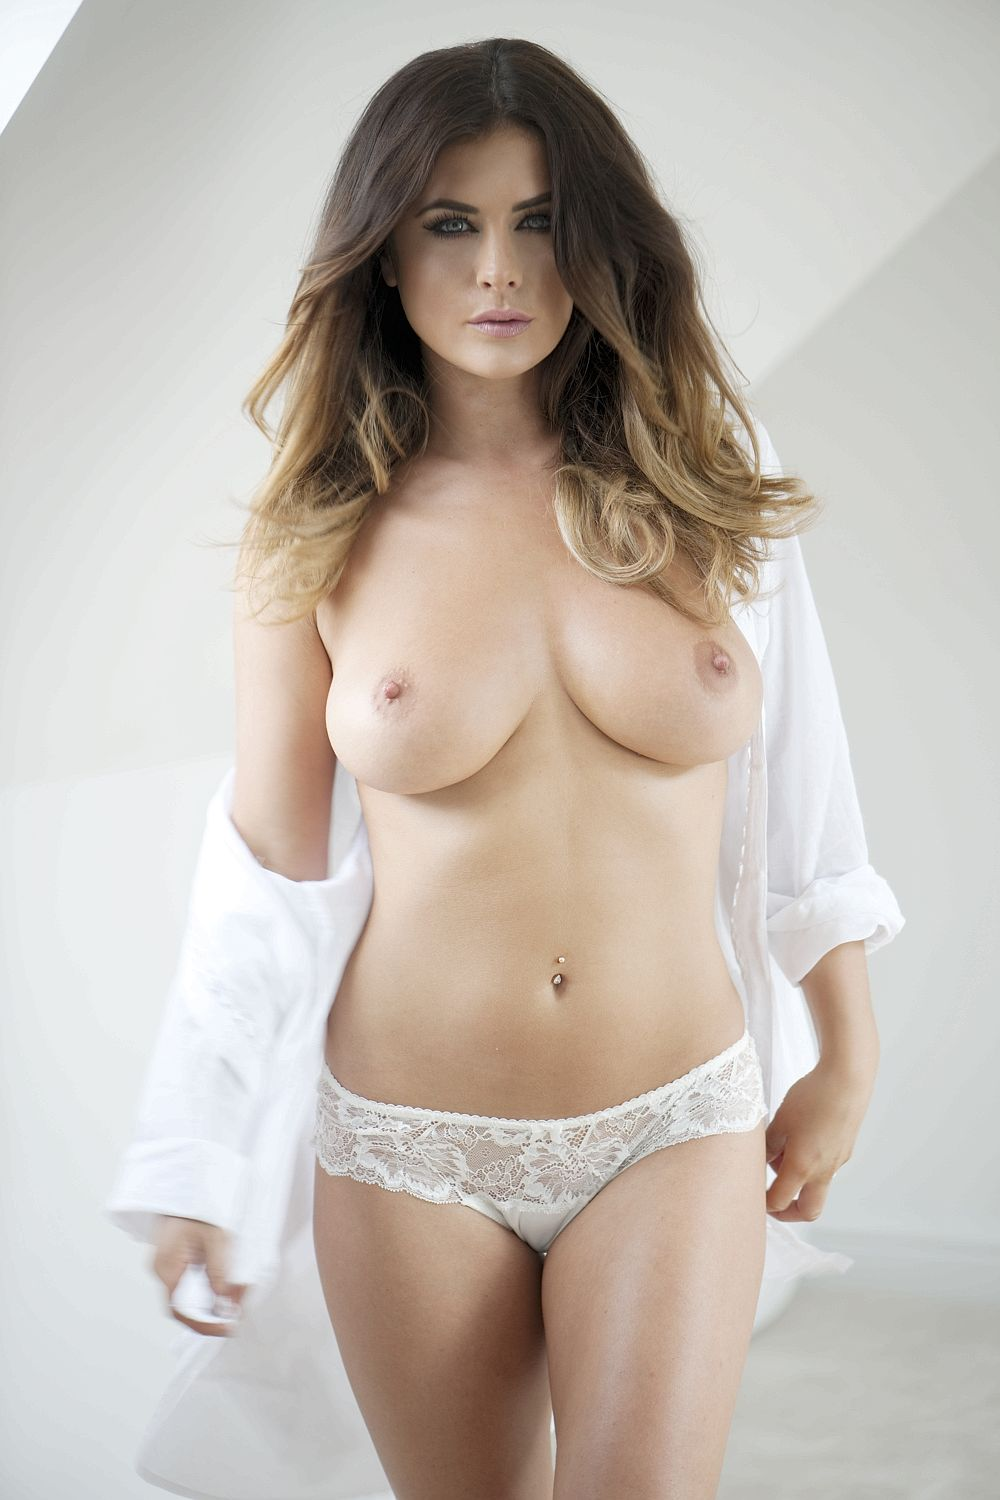 Kelly Hall Topless (4 Photos – Page 3)